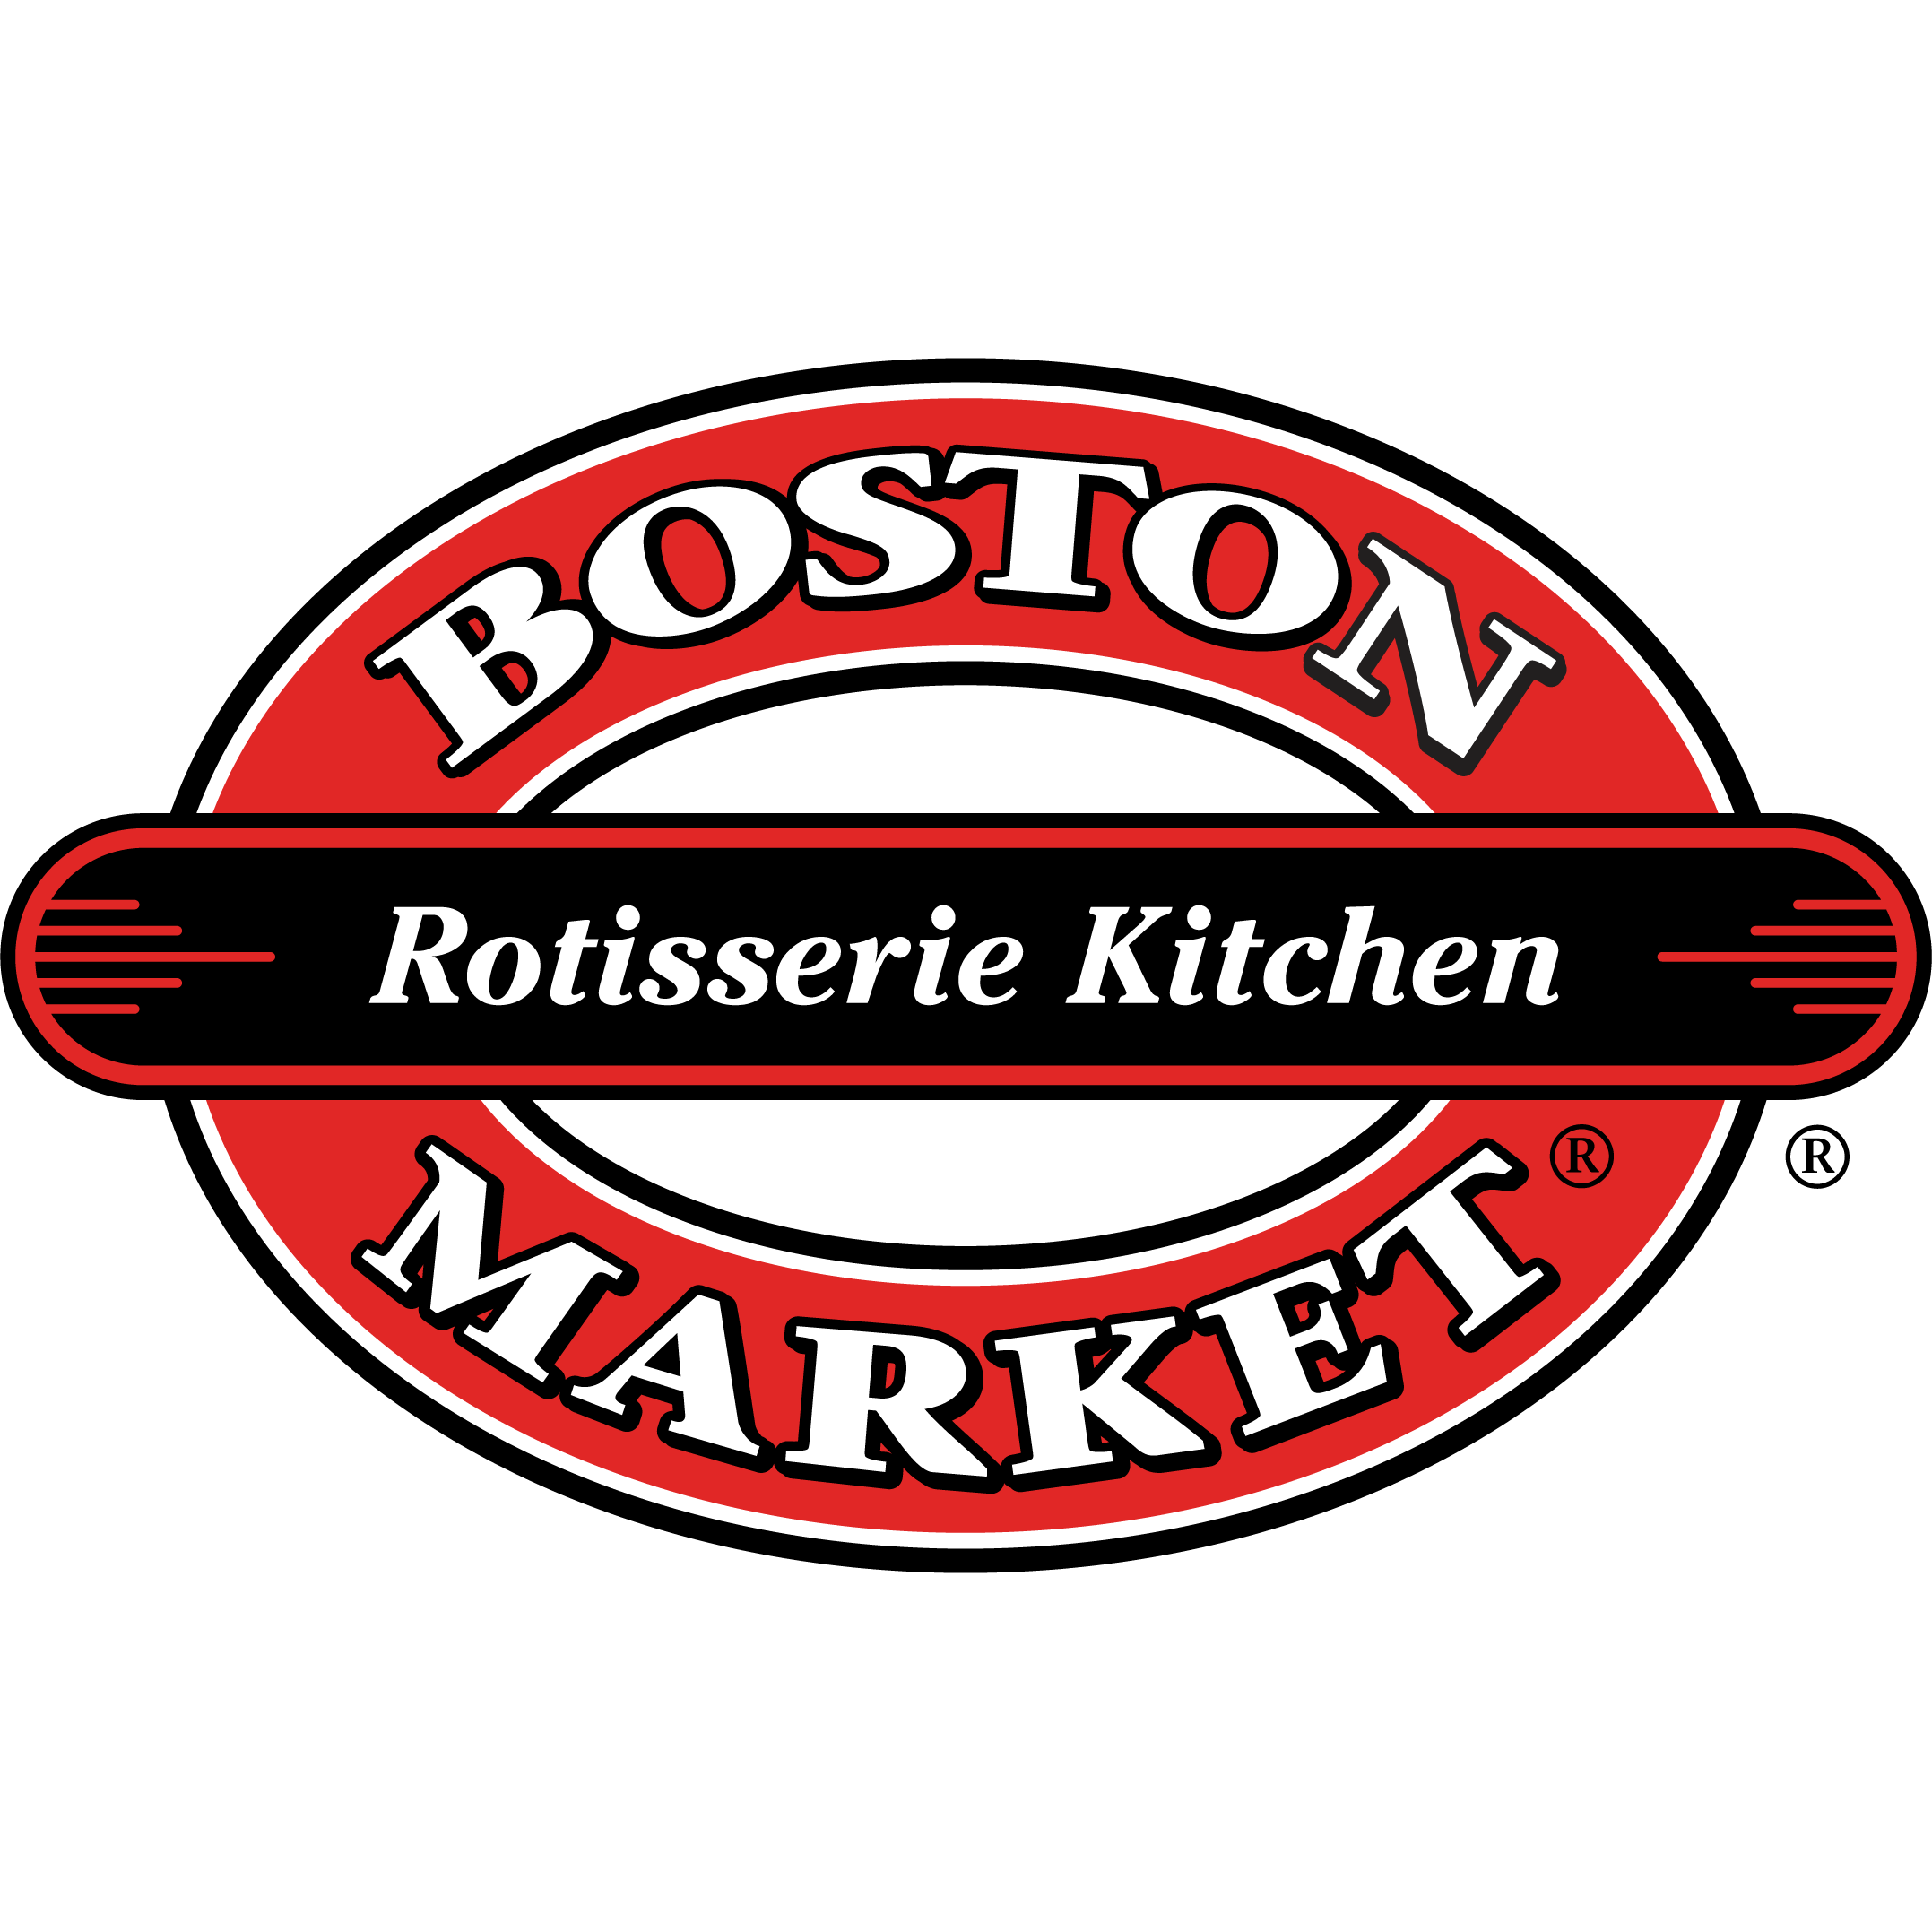 Boston Market - Paramus, NJ - Restaurants